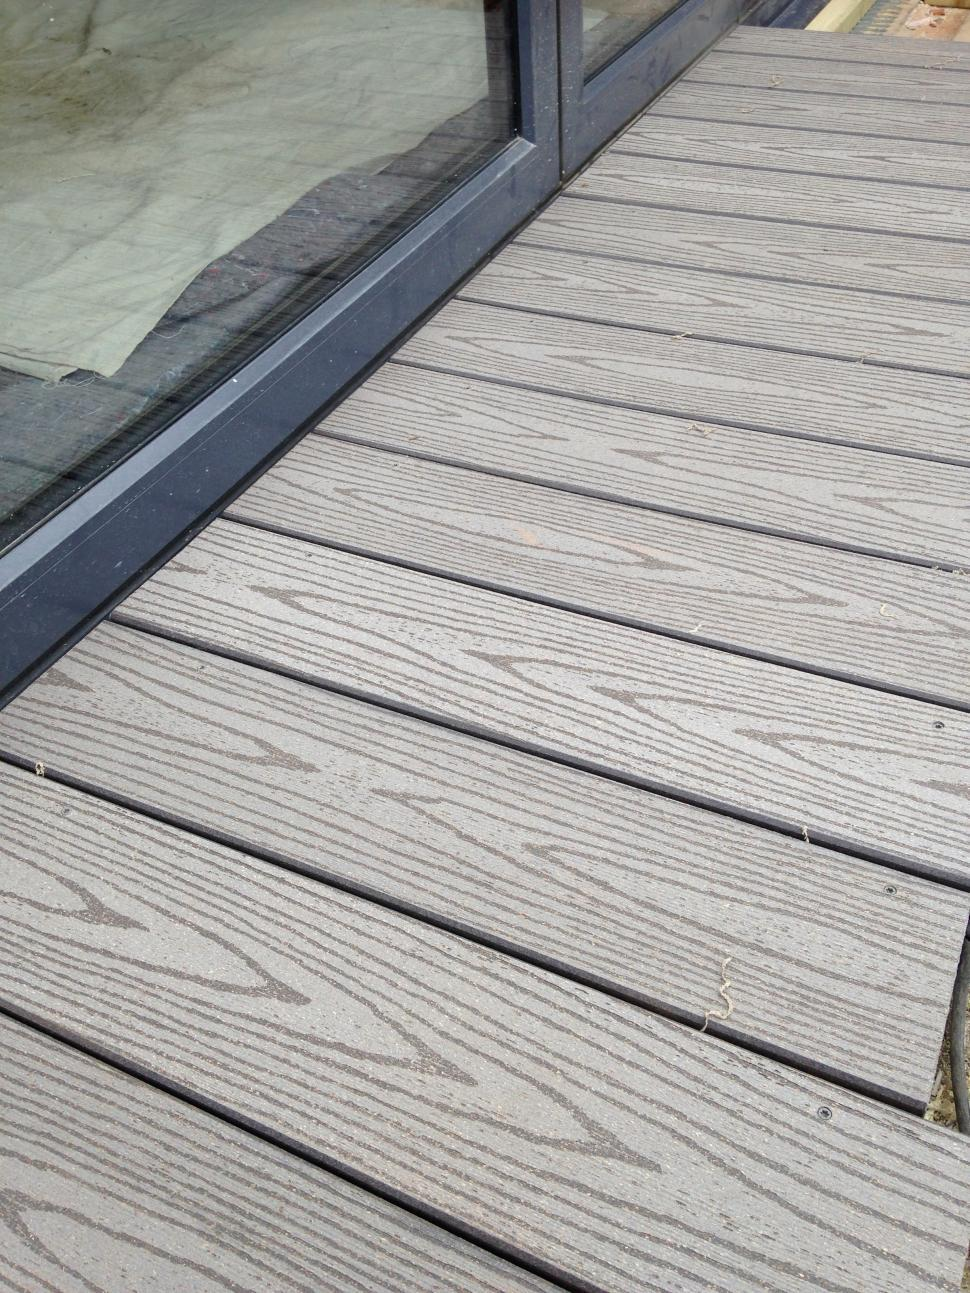 Download Free Stock HD Photo of Composite decking boards  Online